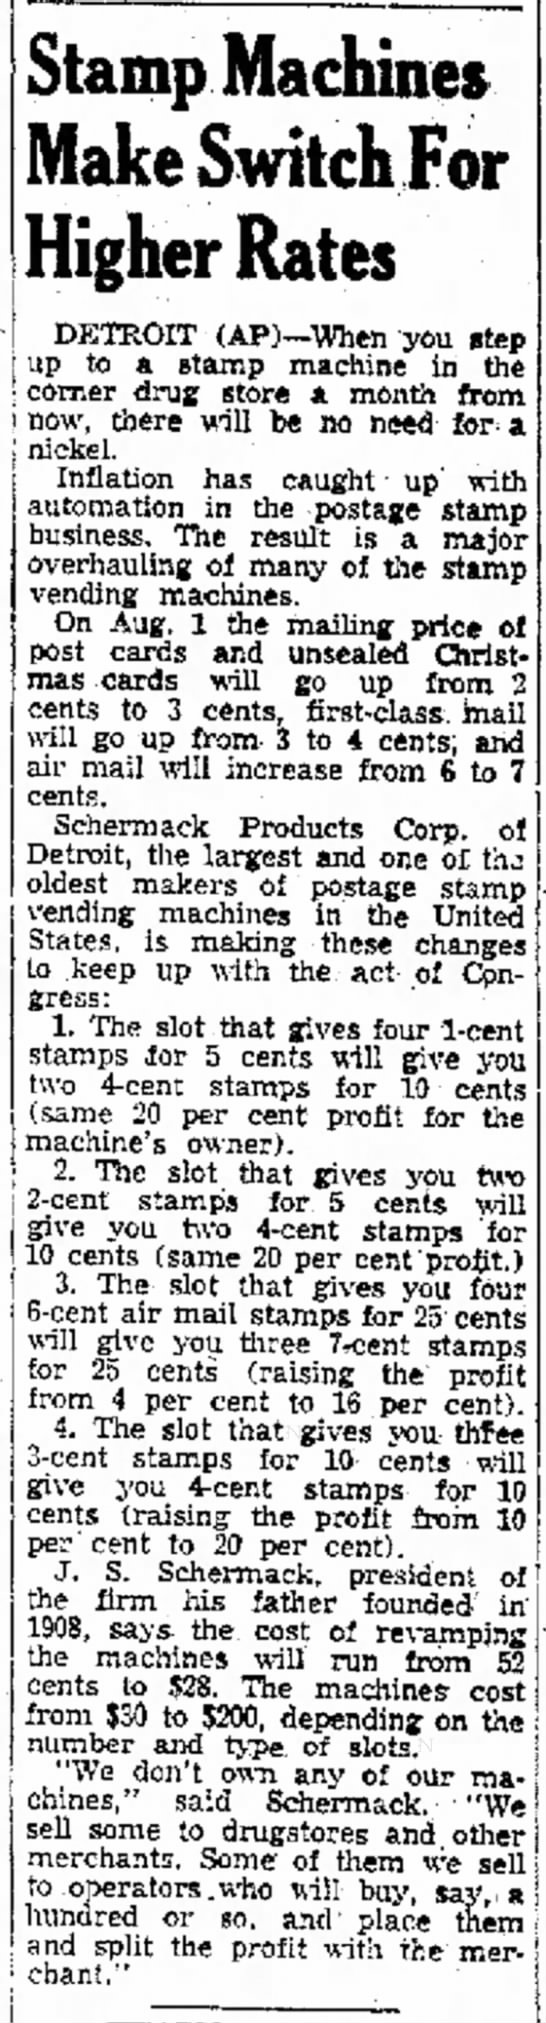 Schermack Products Co 9July1958 Newport Daily News -